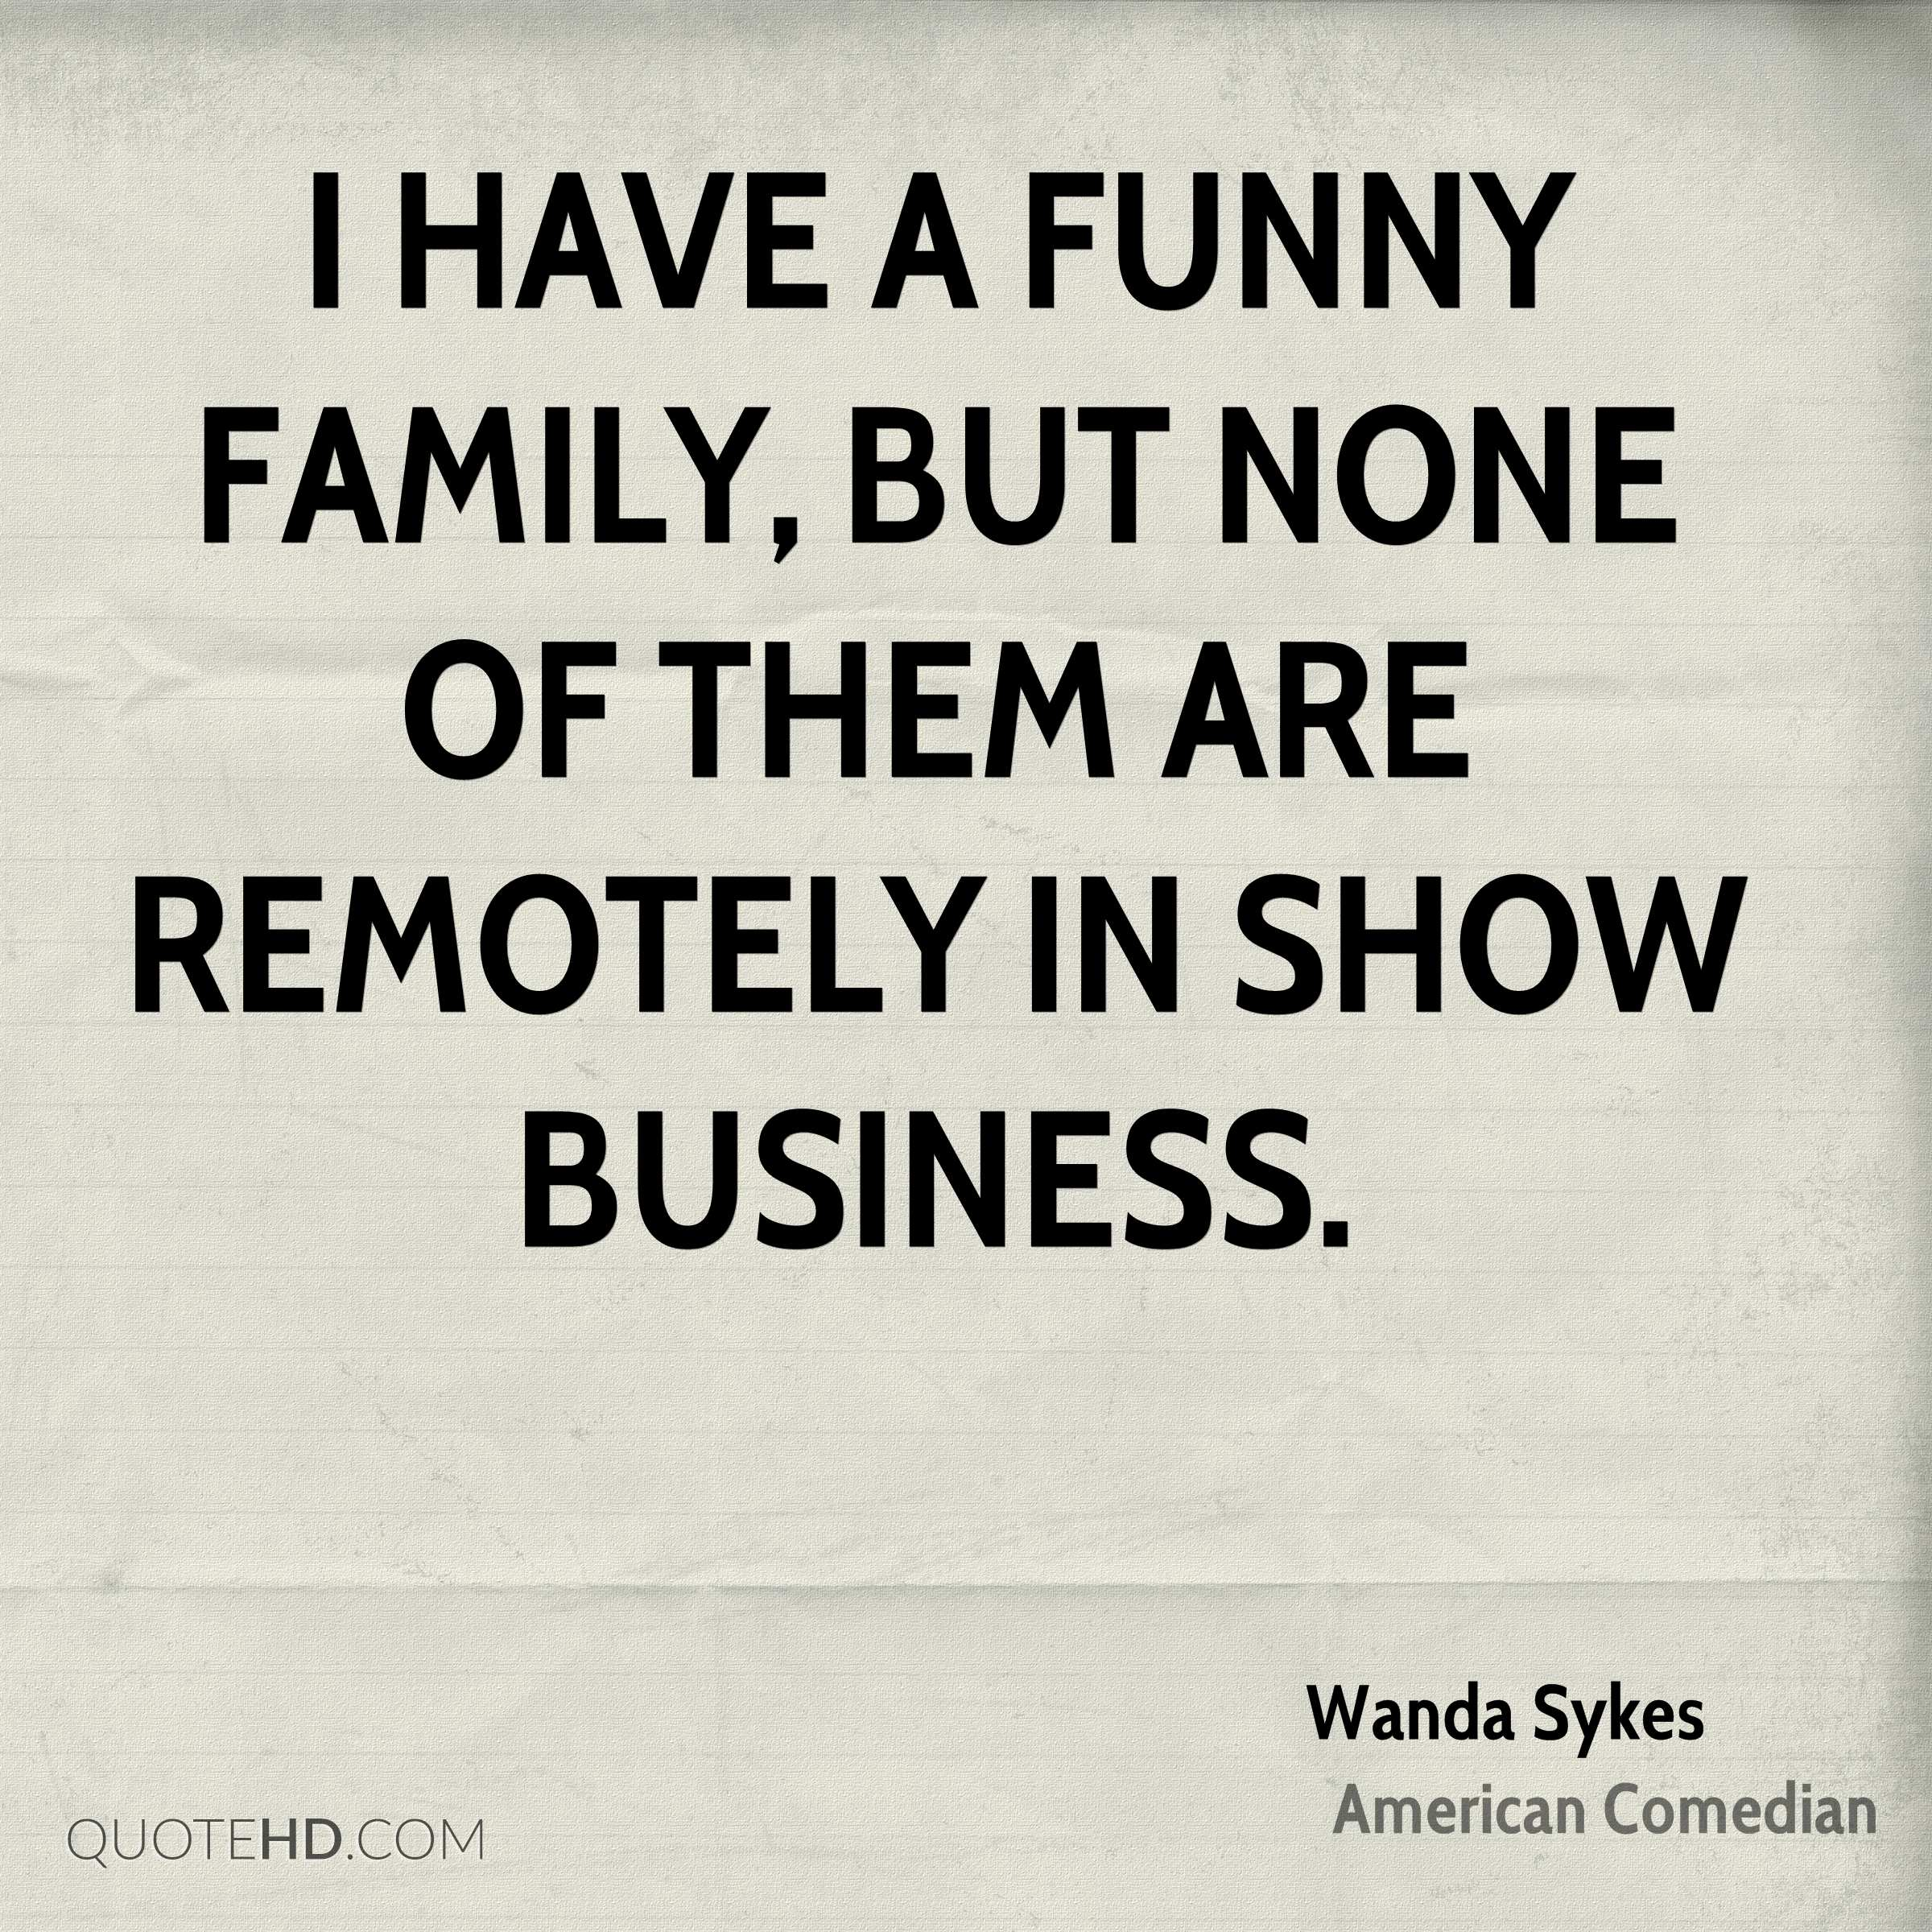 I have a funny family, but none of them are remotely in show business.